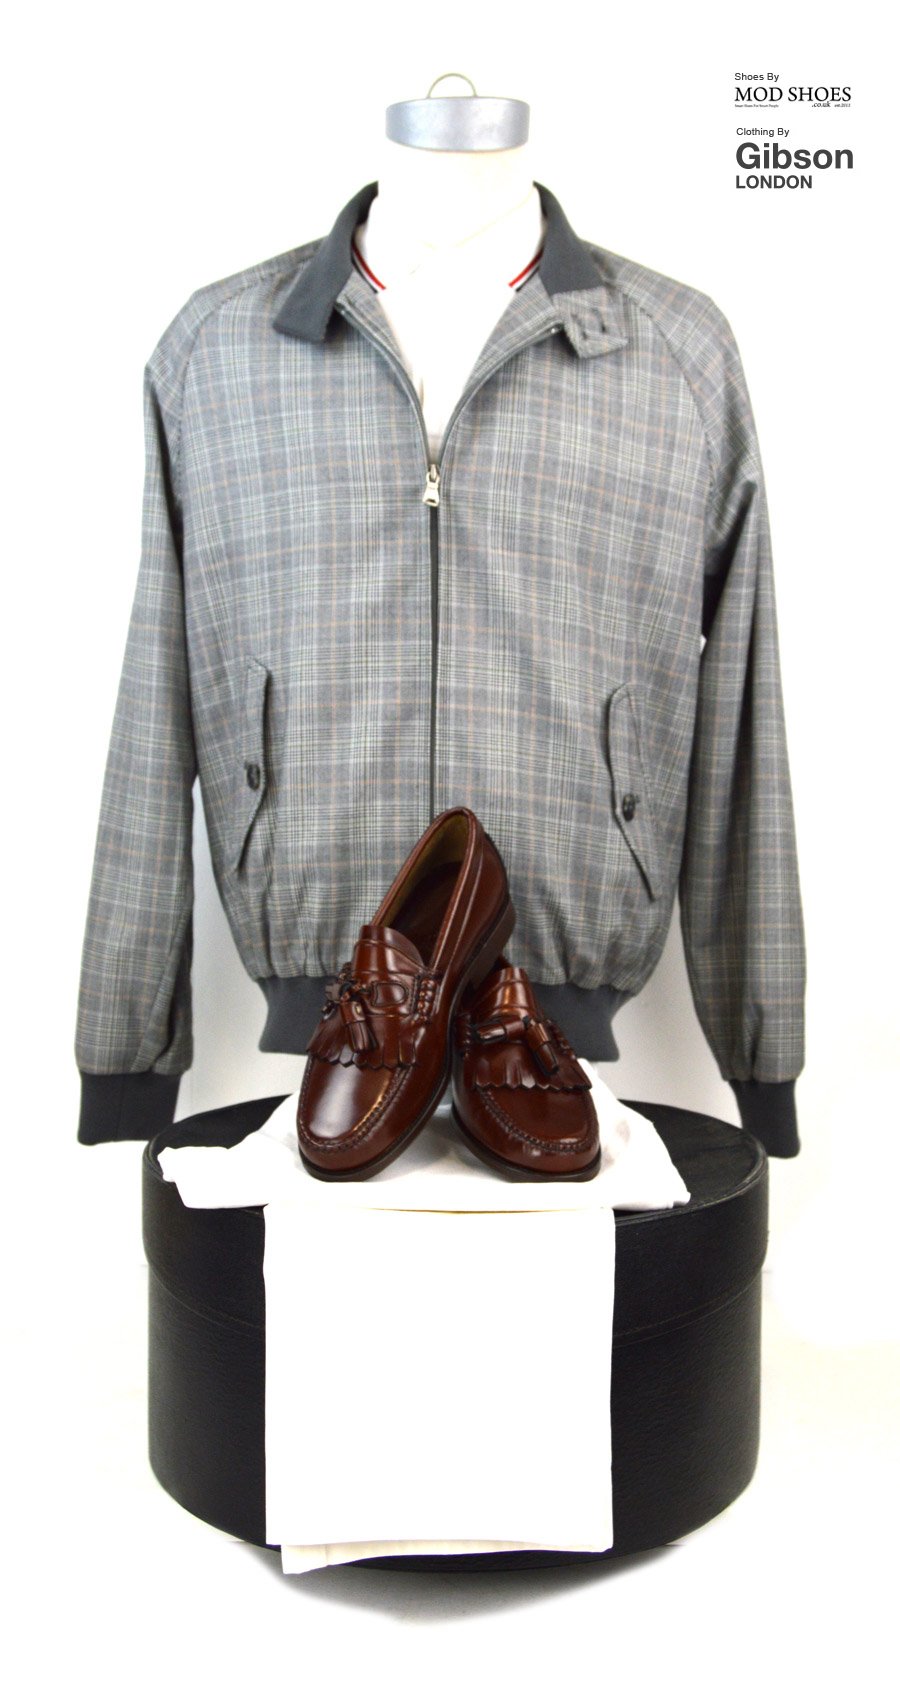 modshoes-prince-of-wales-harrington-with-dukes---Gibson-Clothing